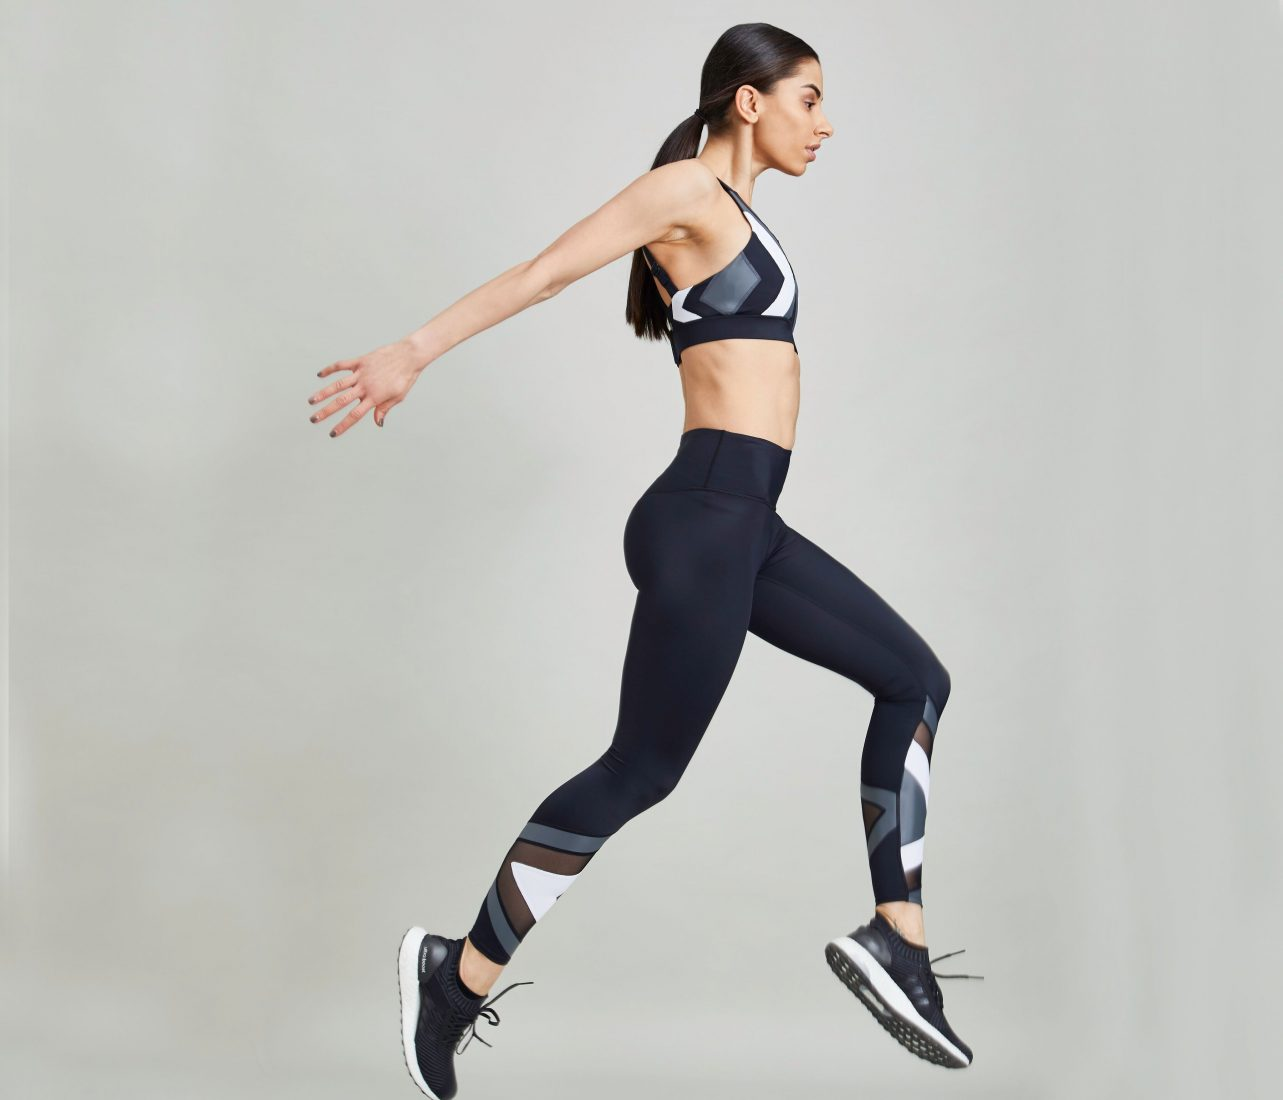 Urban Savage is Activewear Designed by a Barre Expert